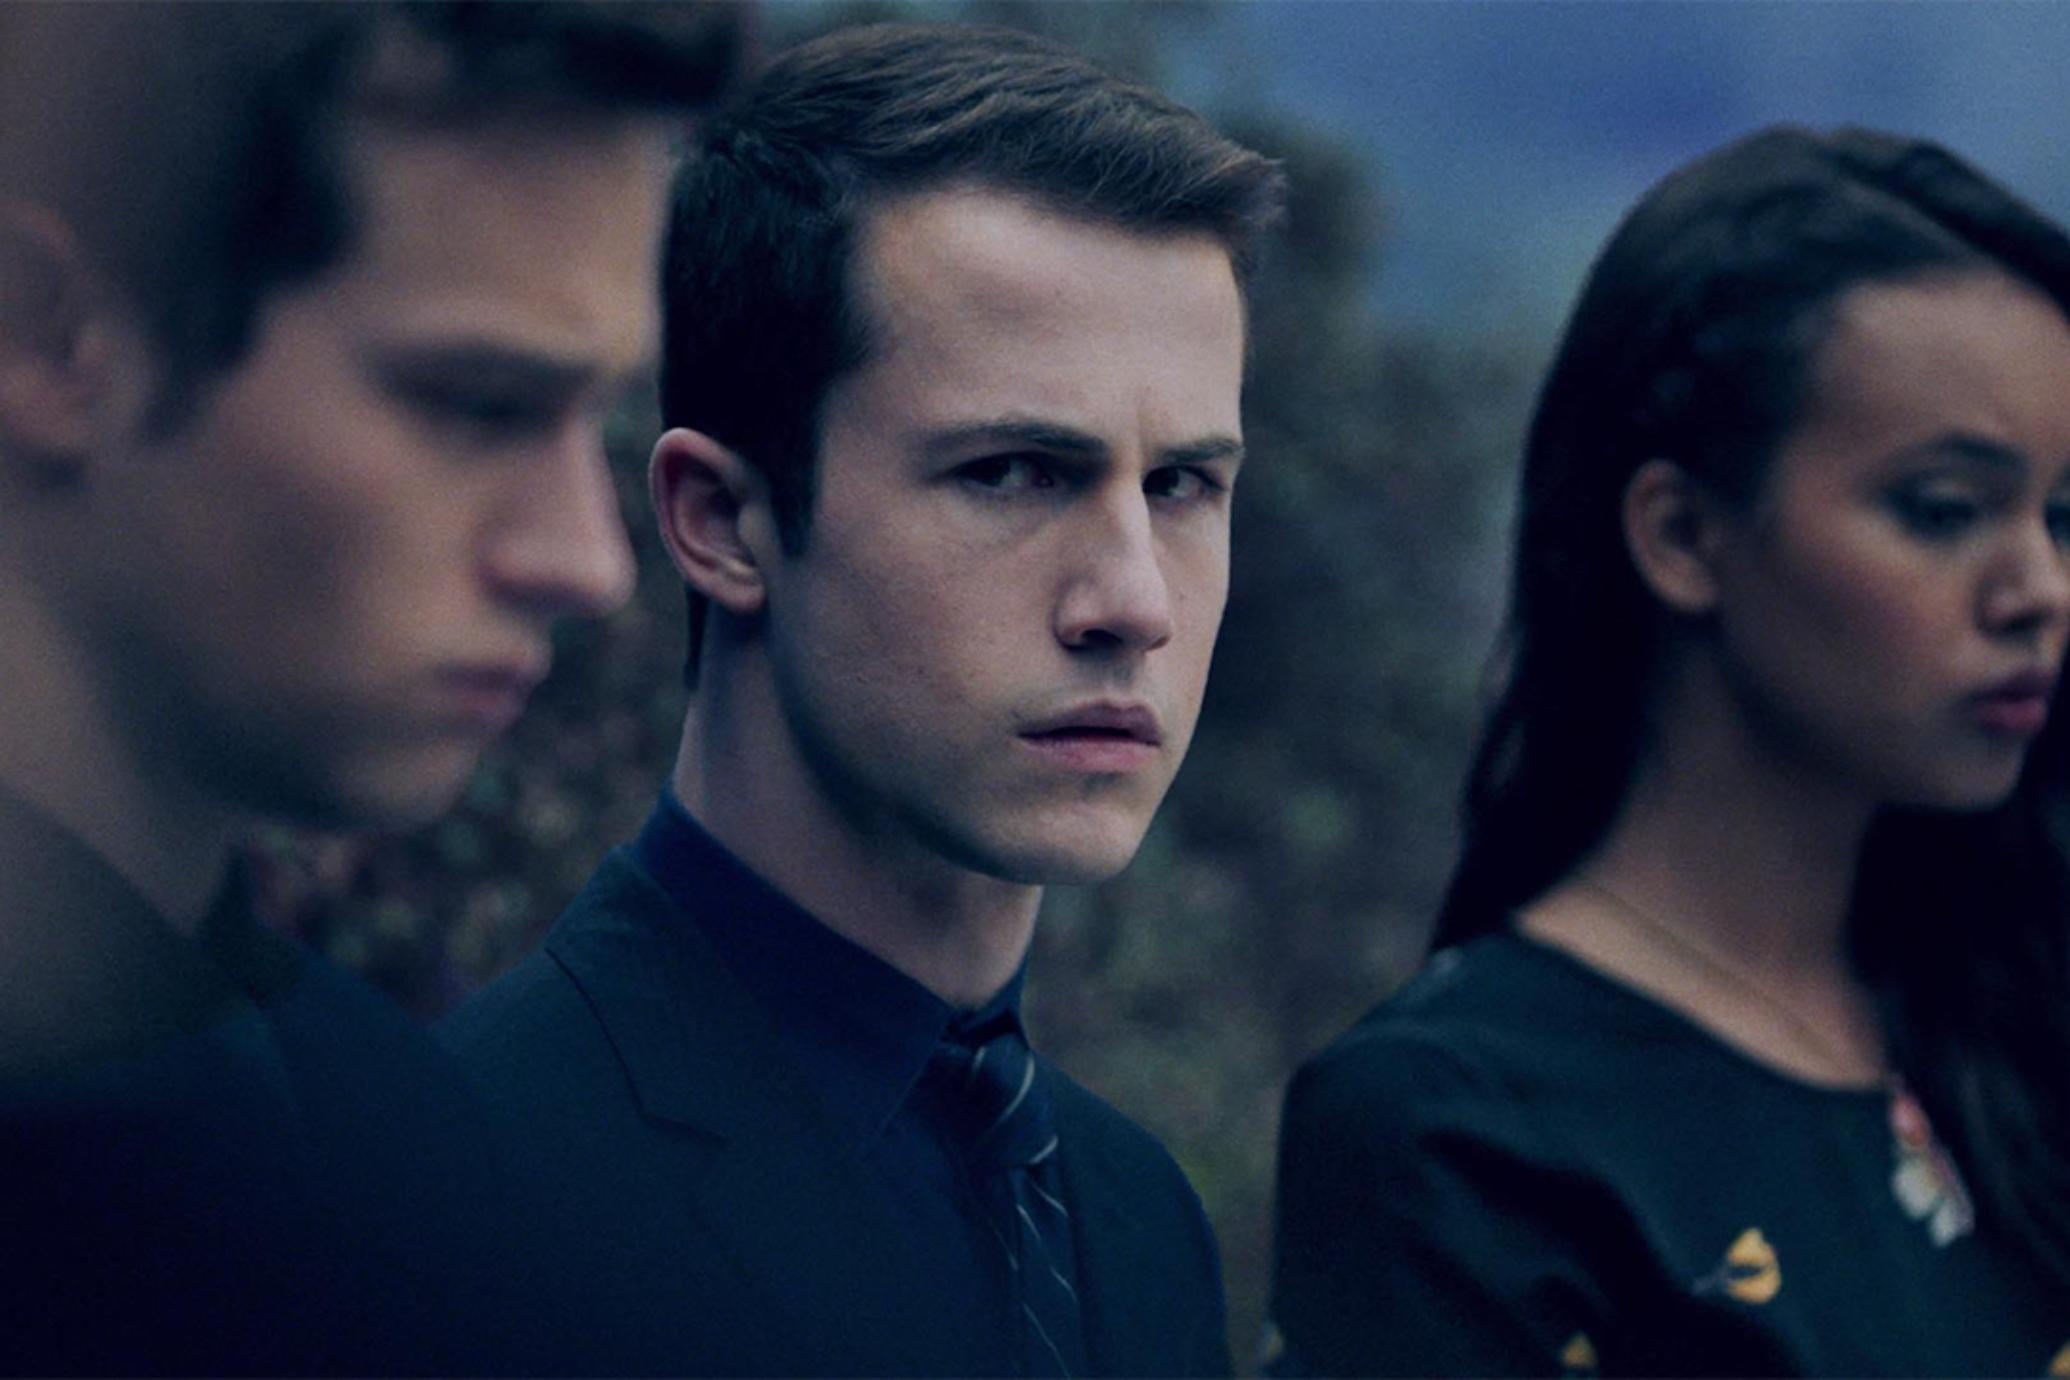 13 Reasons Why season 3 teaser trailer reveals major plot twist!